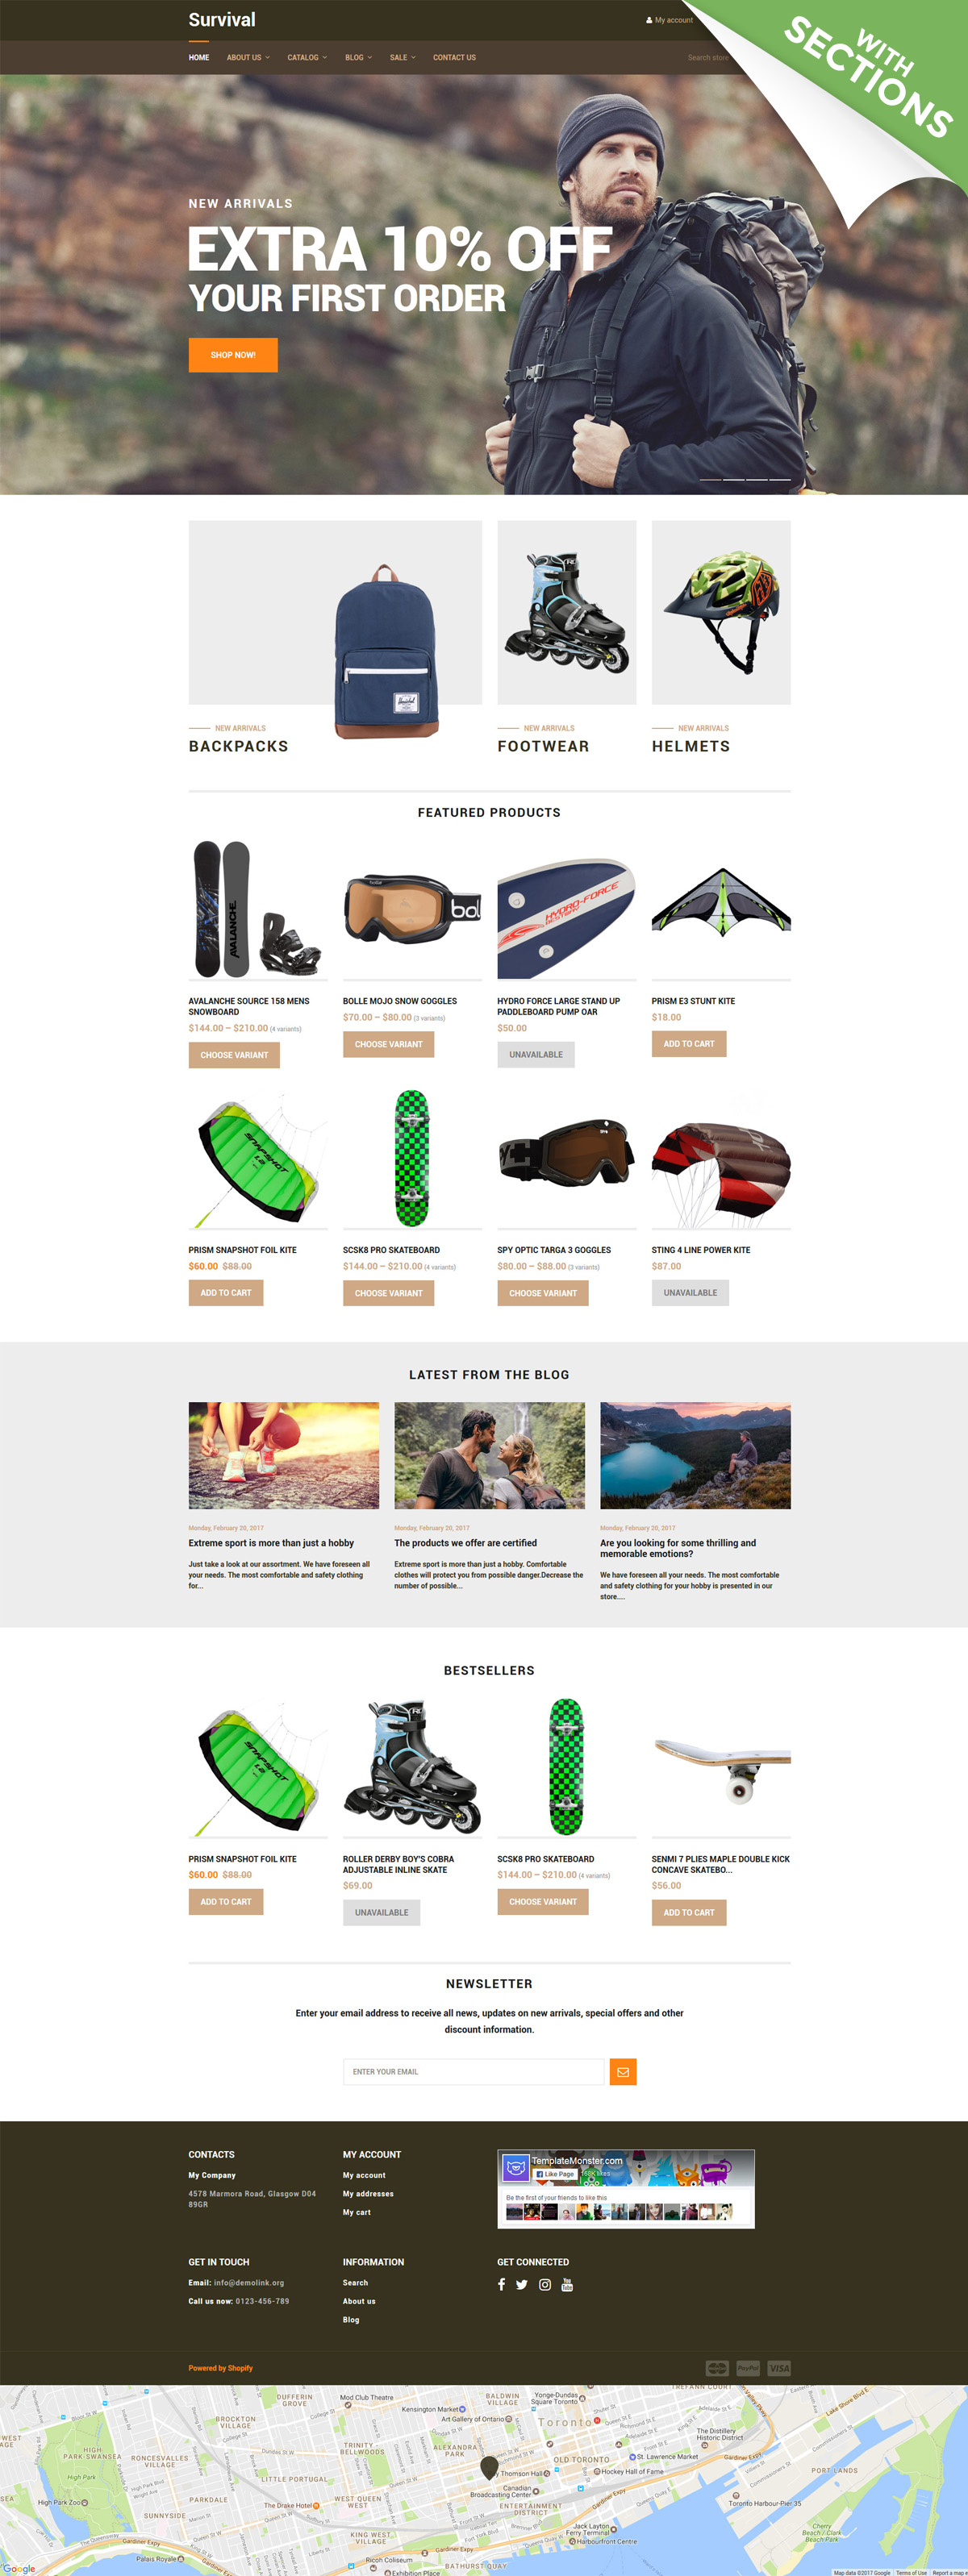 Bootstrap szablon Shopify Survival - Travel Equipment #62383